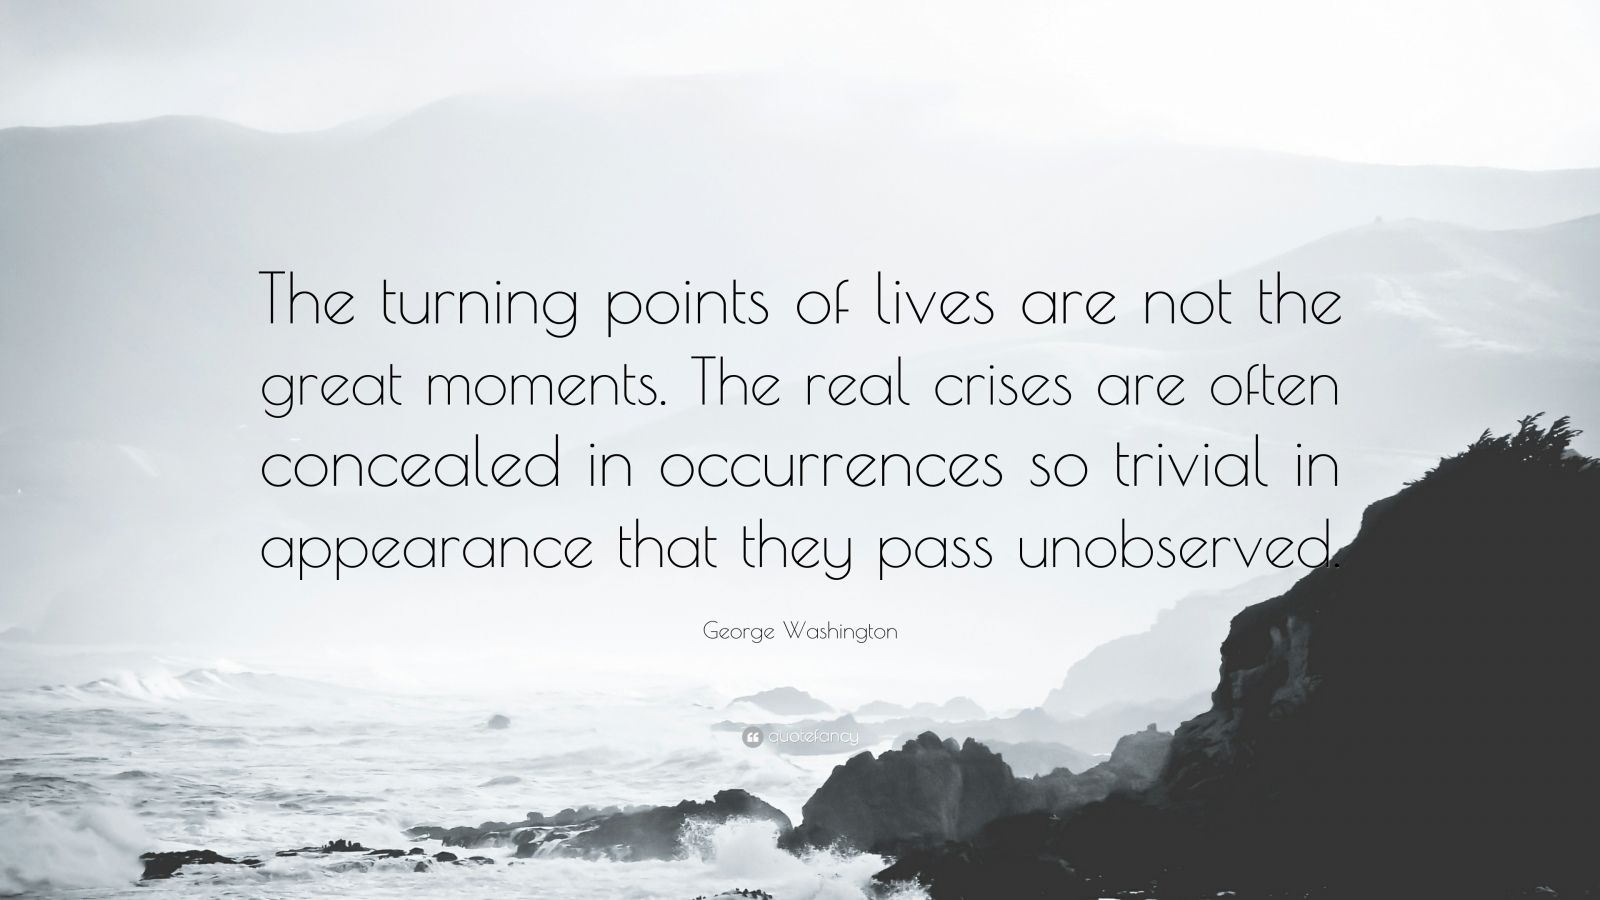 """George Washington Quote: """"The turning points of lives are not the great moments. The real crises are often concealed in occurrences so trivial in appearance that they pass unobserved."""""""